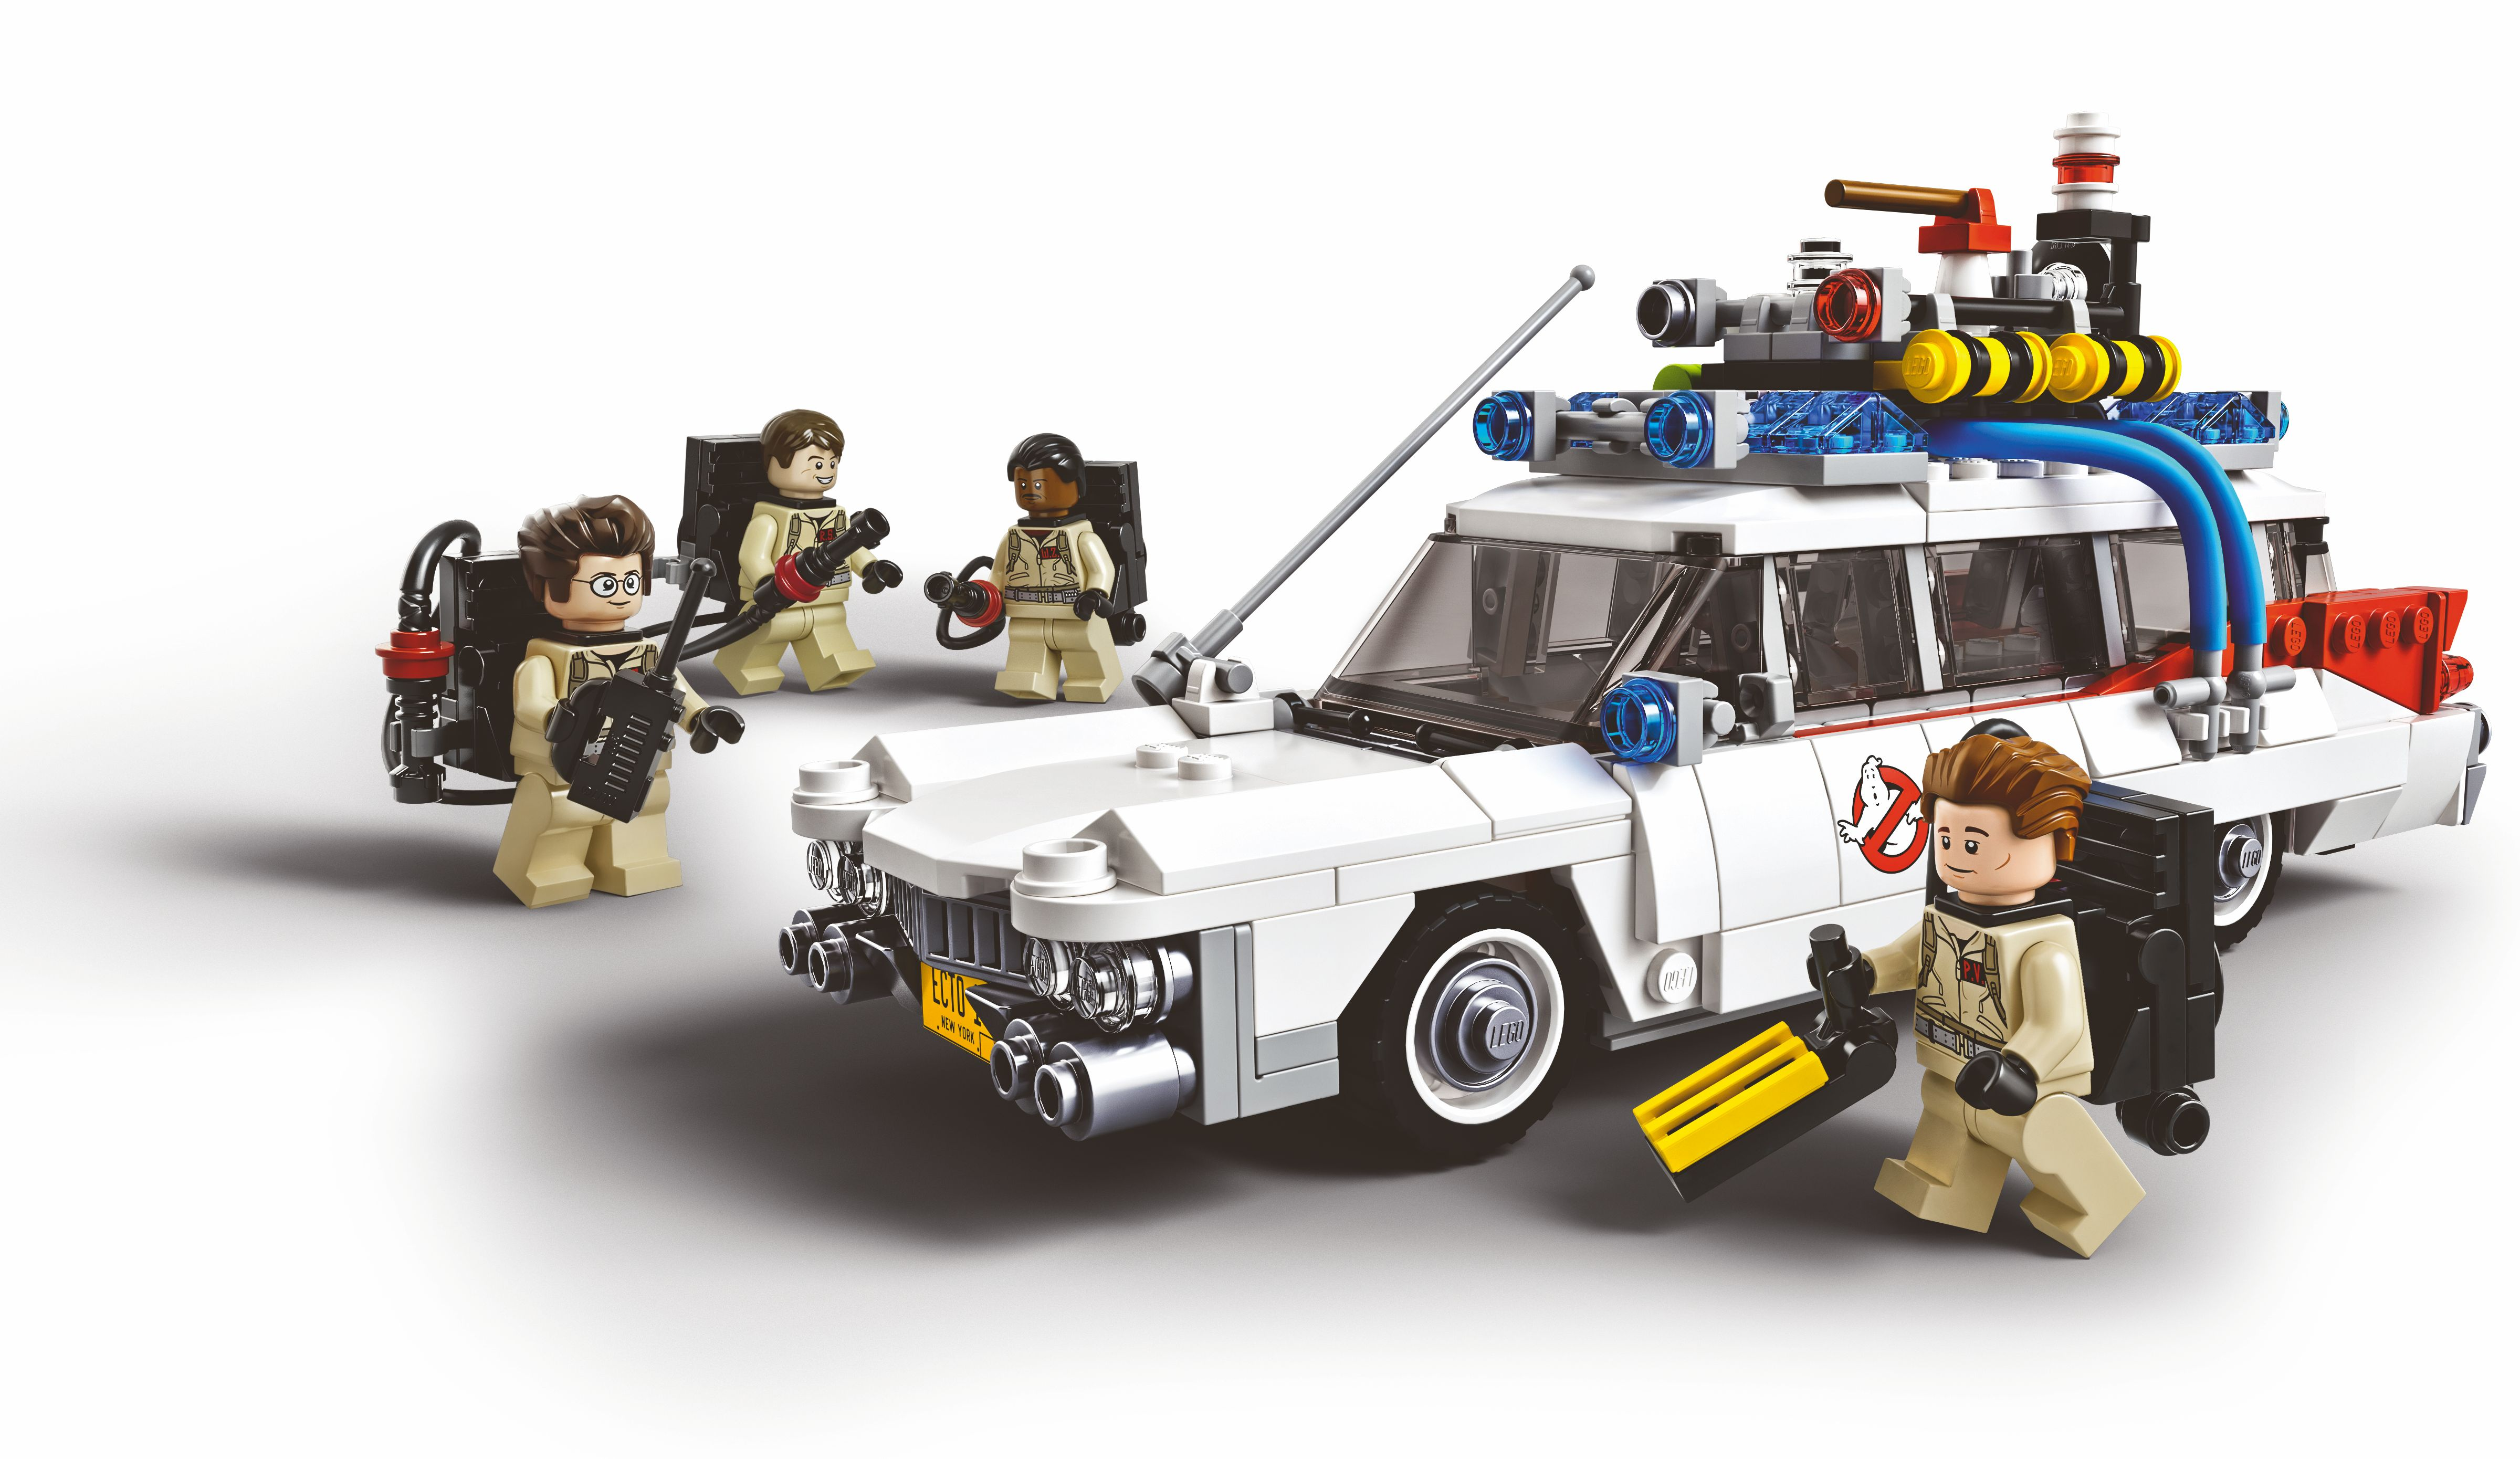 This is the Lego Ghostbusters toy, which will presumably look the same in the game